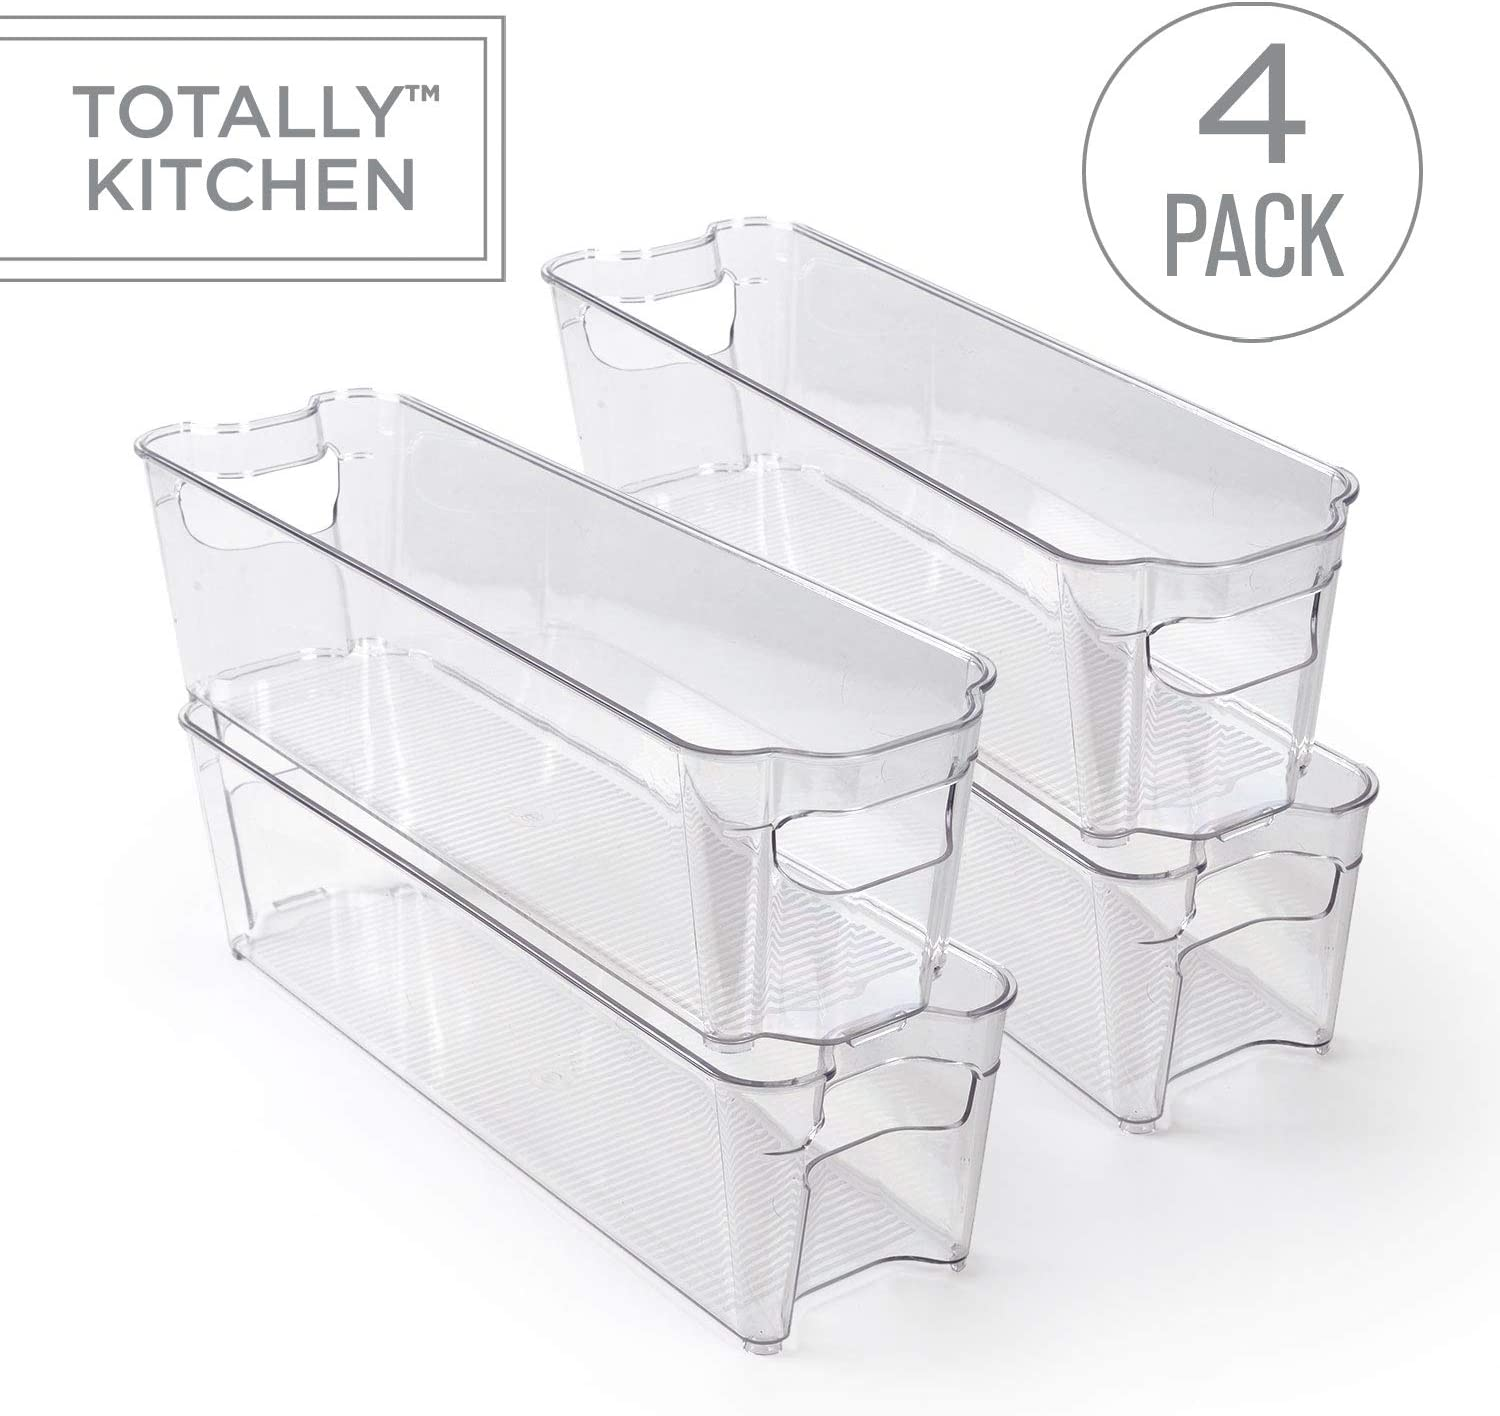 Totally Kitchen Clear Plastic Stackable Storage Bins | Refrigerator, Freezer, Pantry & Clothes Organization Container with Carrying Handles | Small, 4 Pack